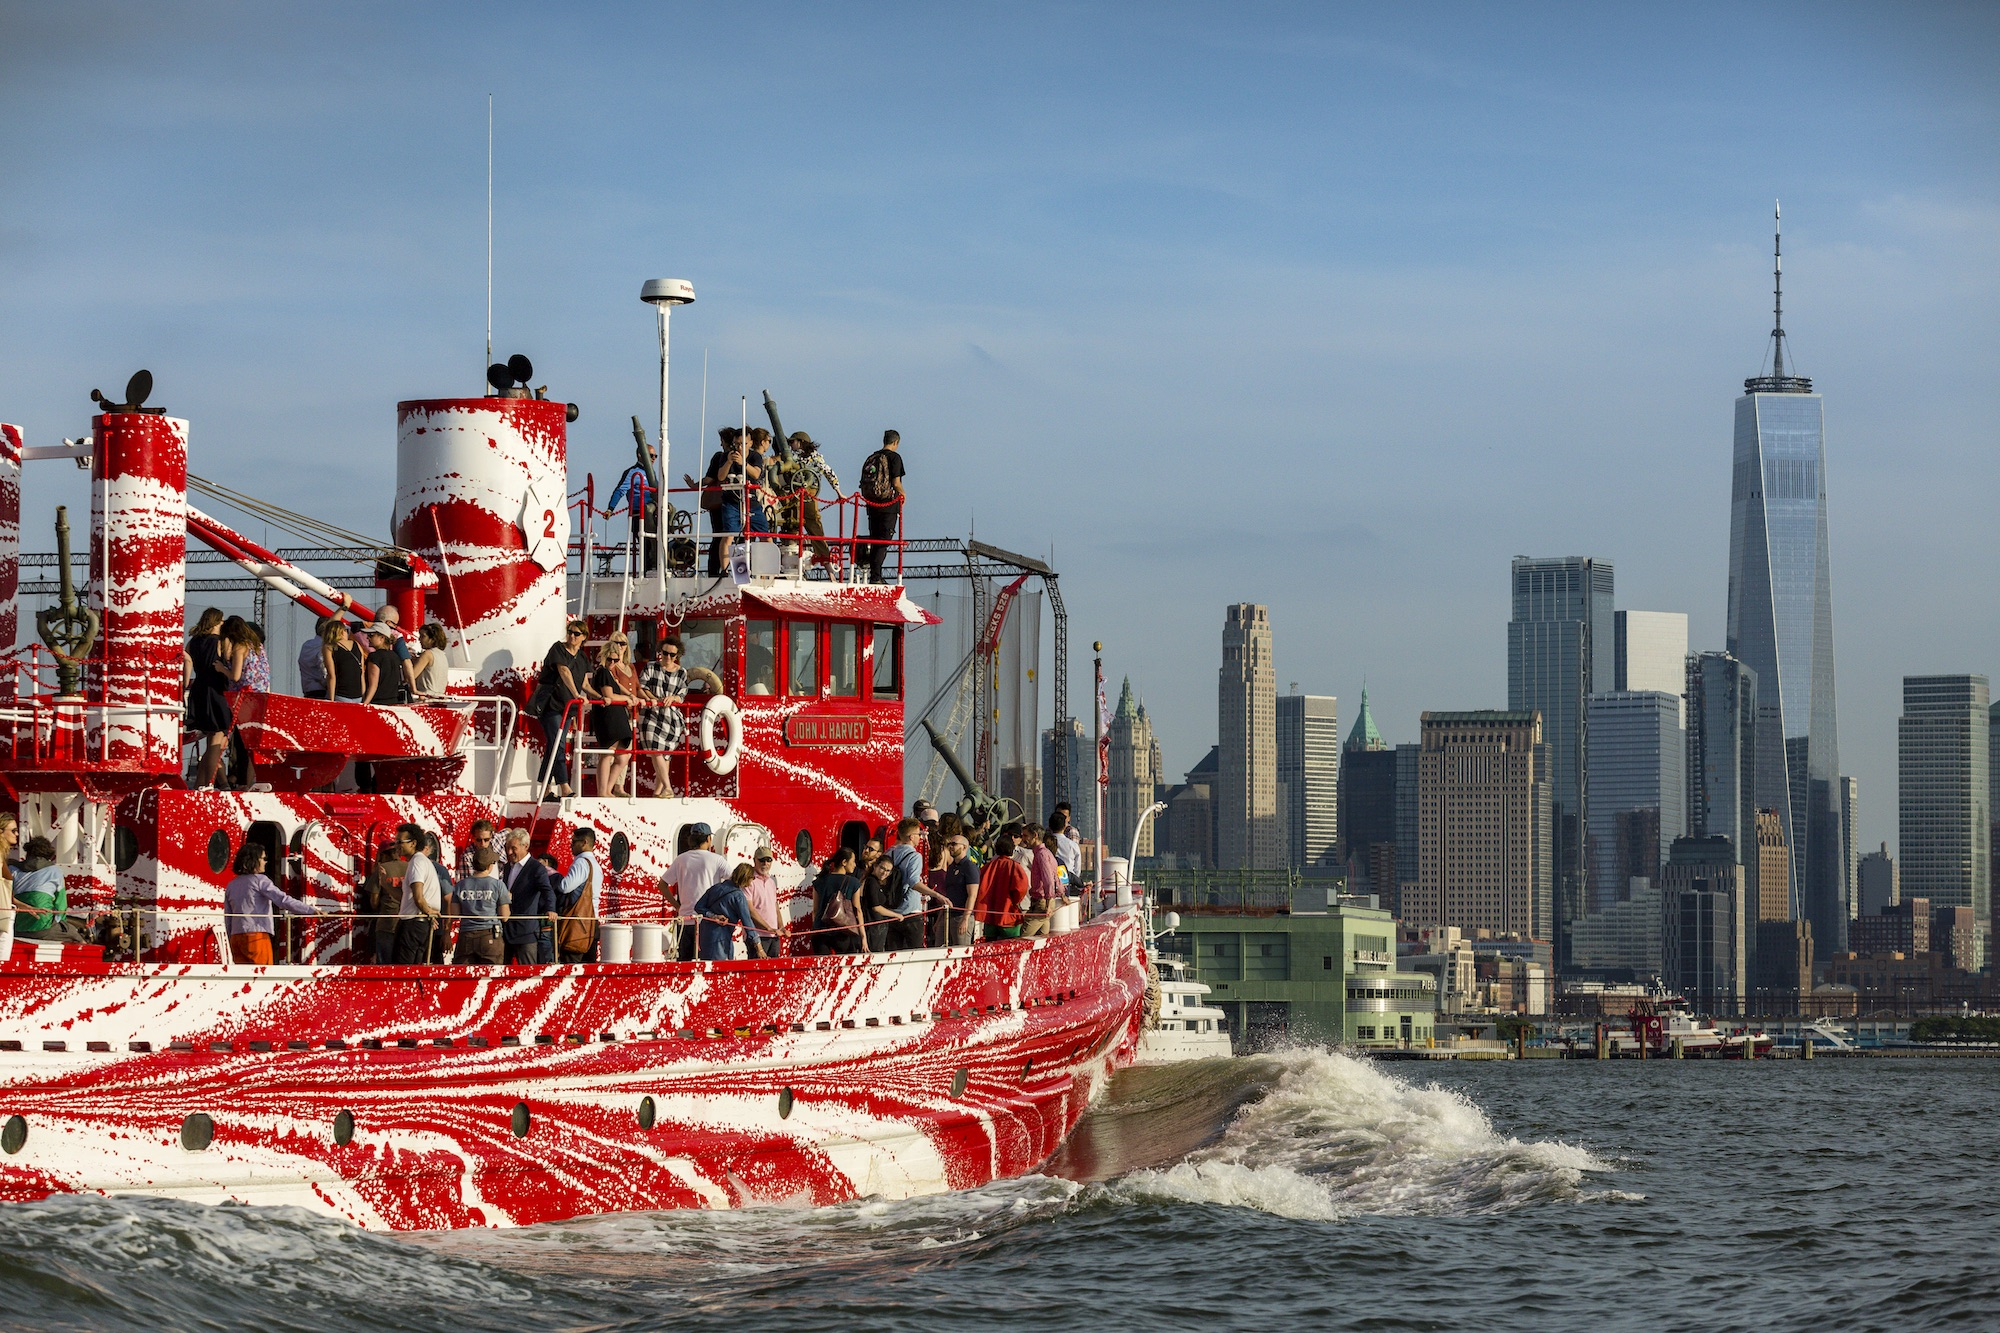 e02bd80c8 New York s most historic fire boat has a dazzling new paint job - Curbed NY